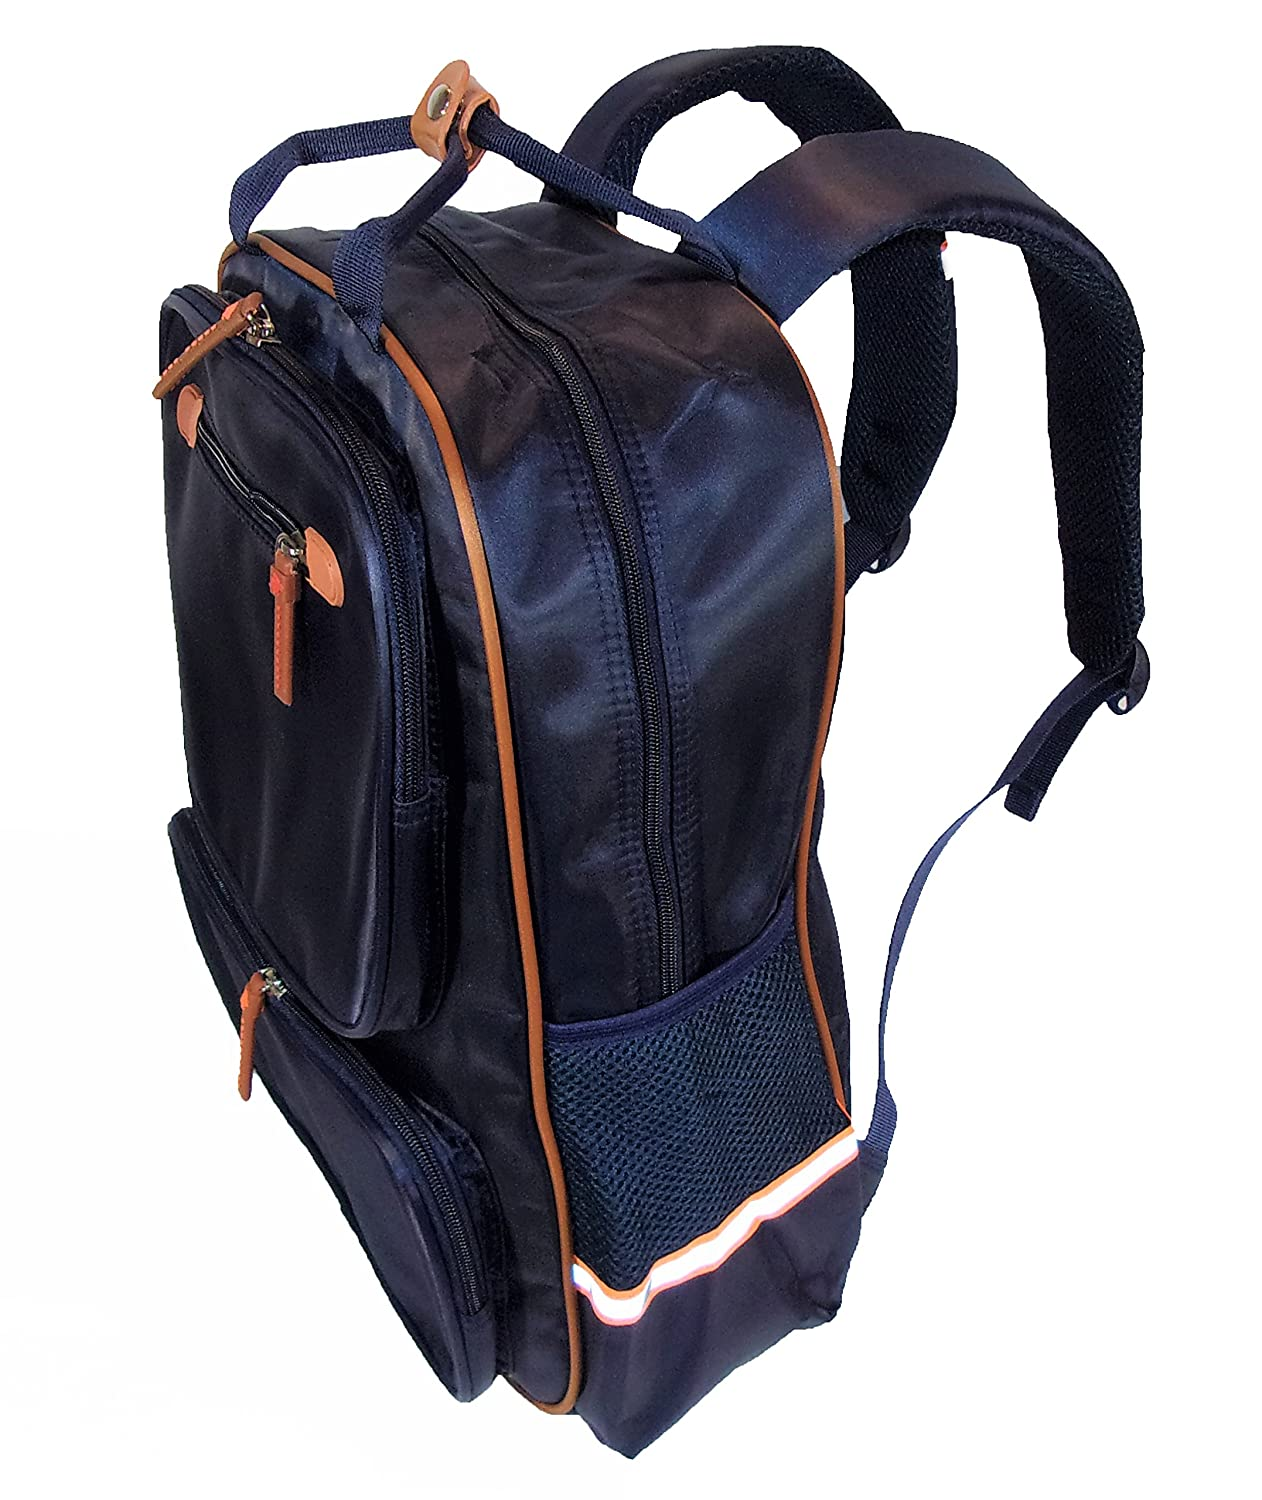 47bdaf44af Amazon.com  Waterproof School Backpack Assorted for Boys and Girls. Tear  resistant for school and travel. Made of Nylon and Fluorescent Strips.